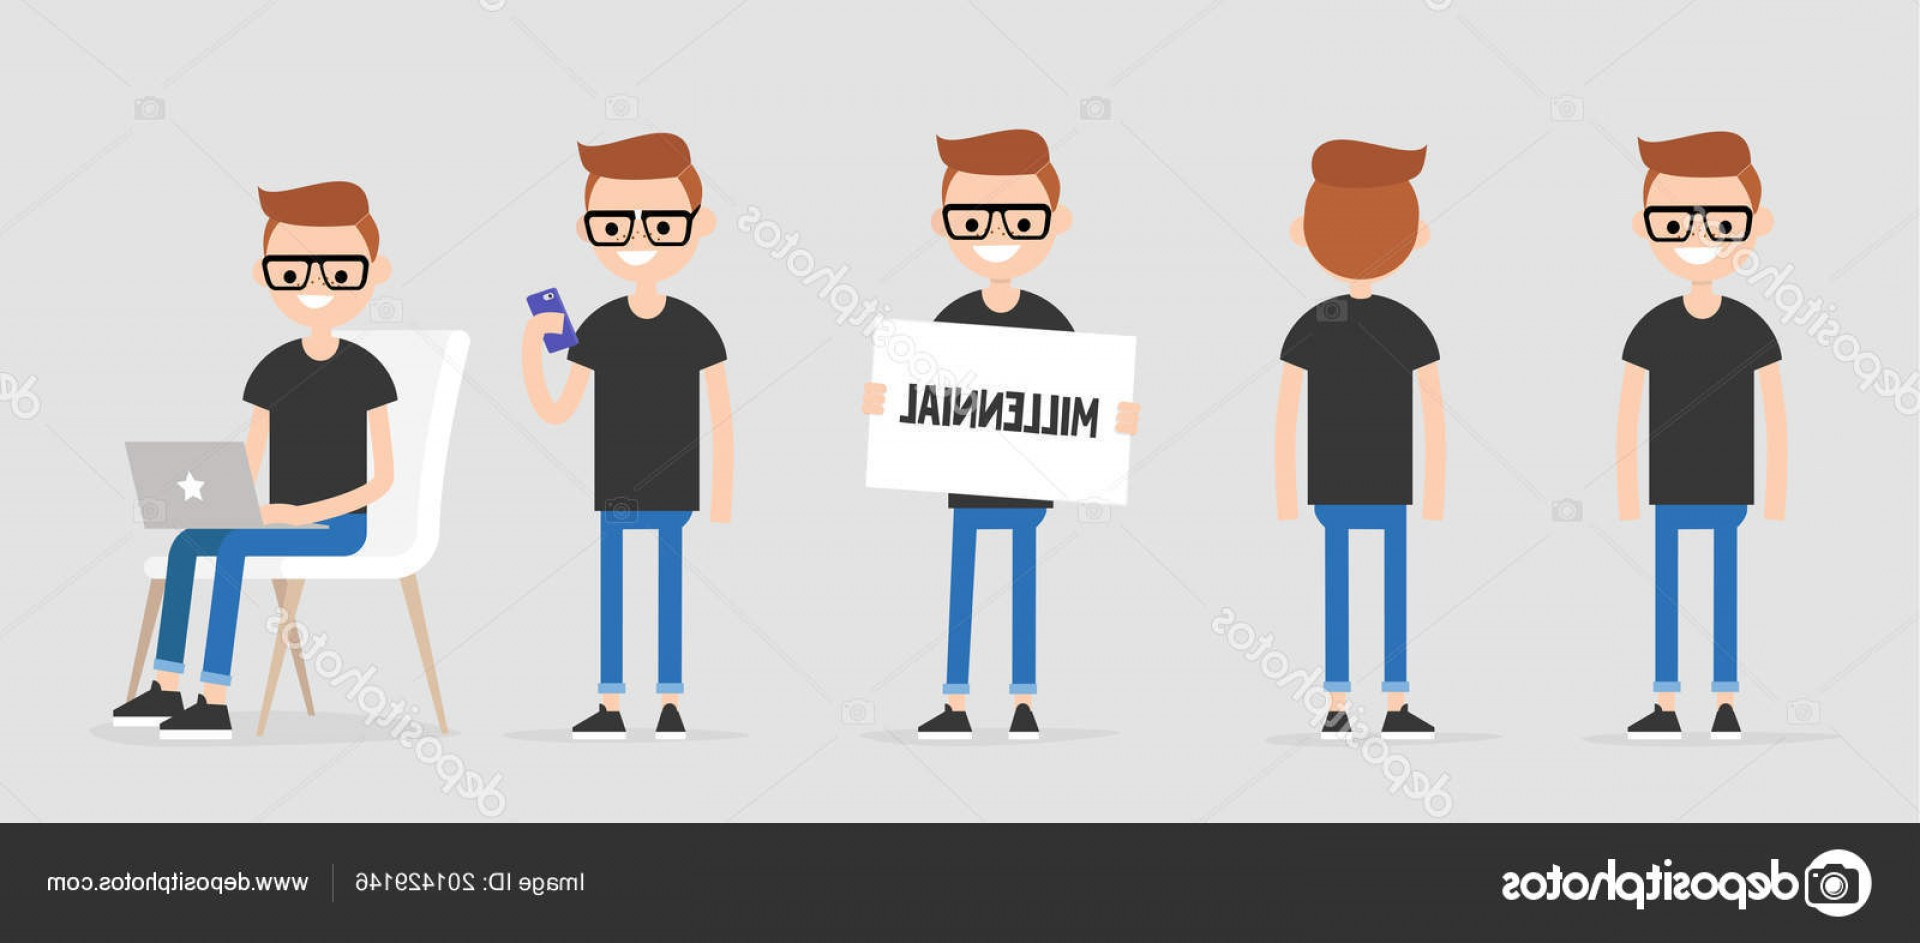 Millennial Vector: Stock Illustration Millennial Character Various Poses Front